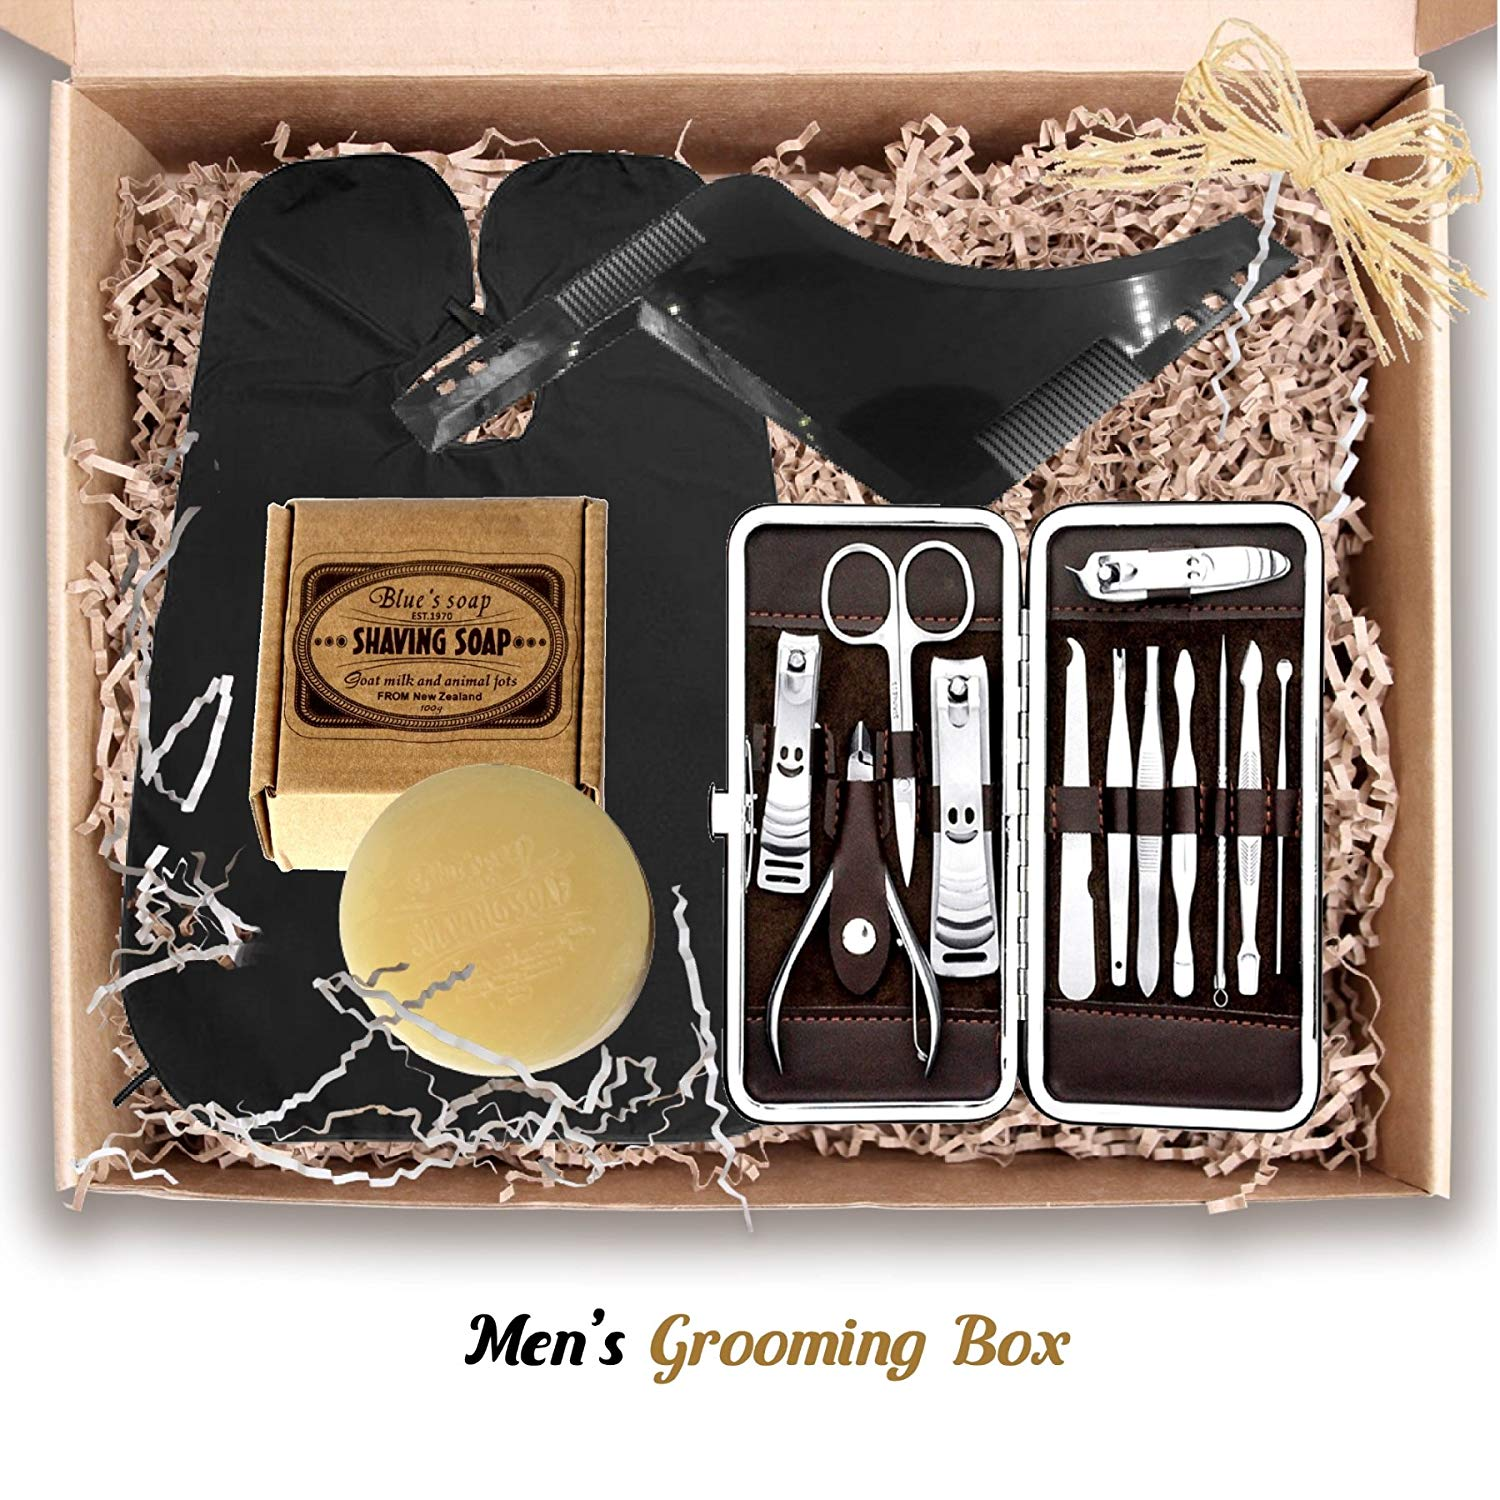 Shaving Gift Box Hamper for Men: Stainless Steel Manicure Set, Goats Milk  Soap, Beard Comb, Hair & Beard Trim Clean Up Apron